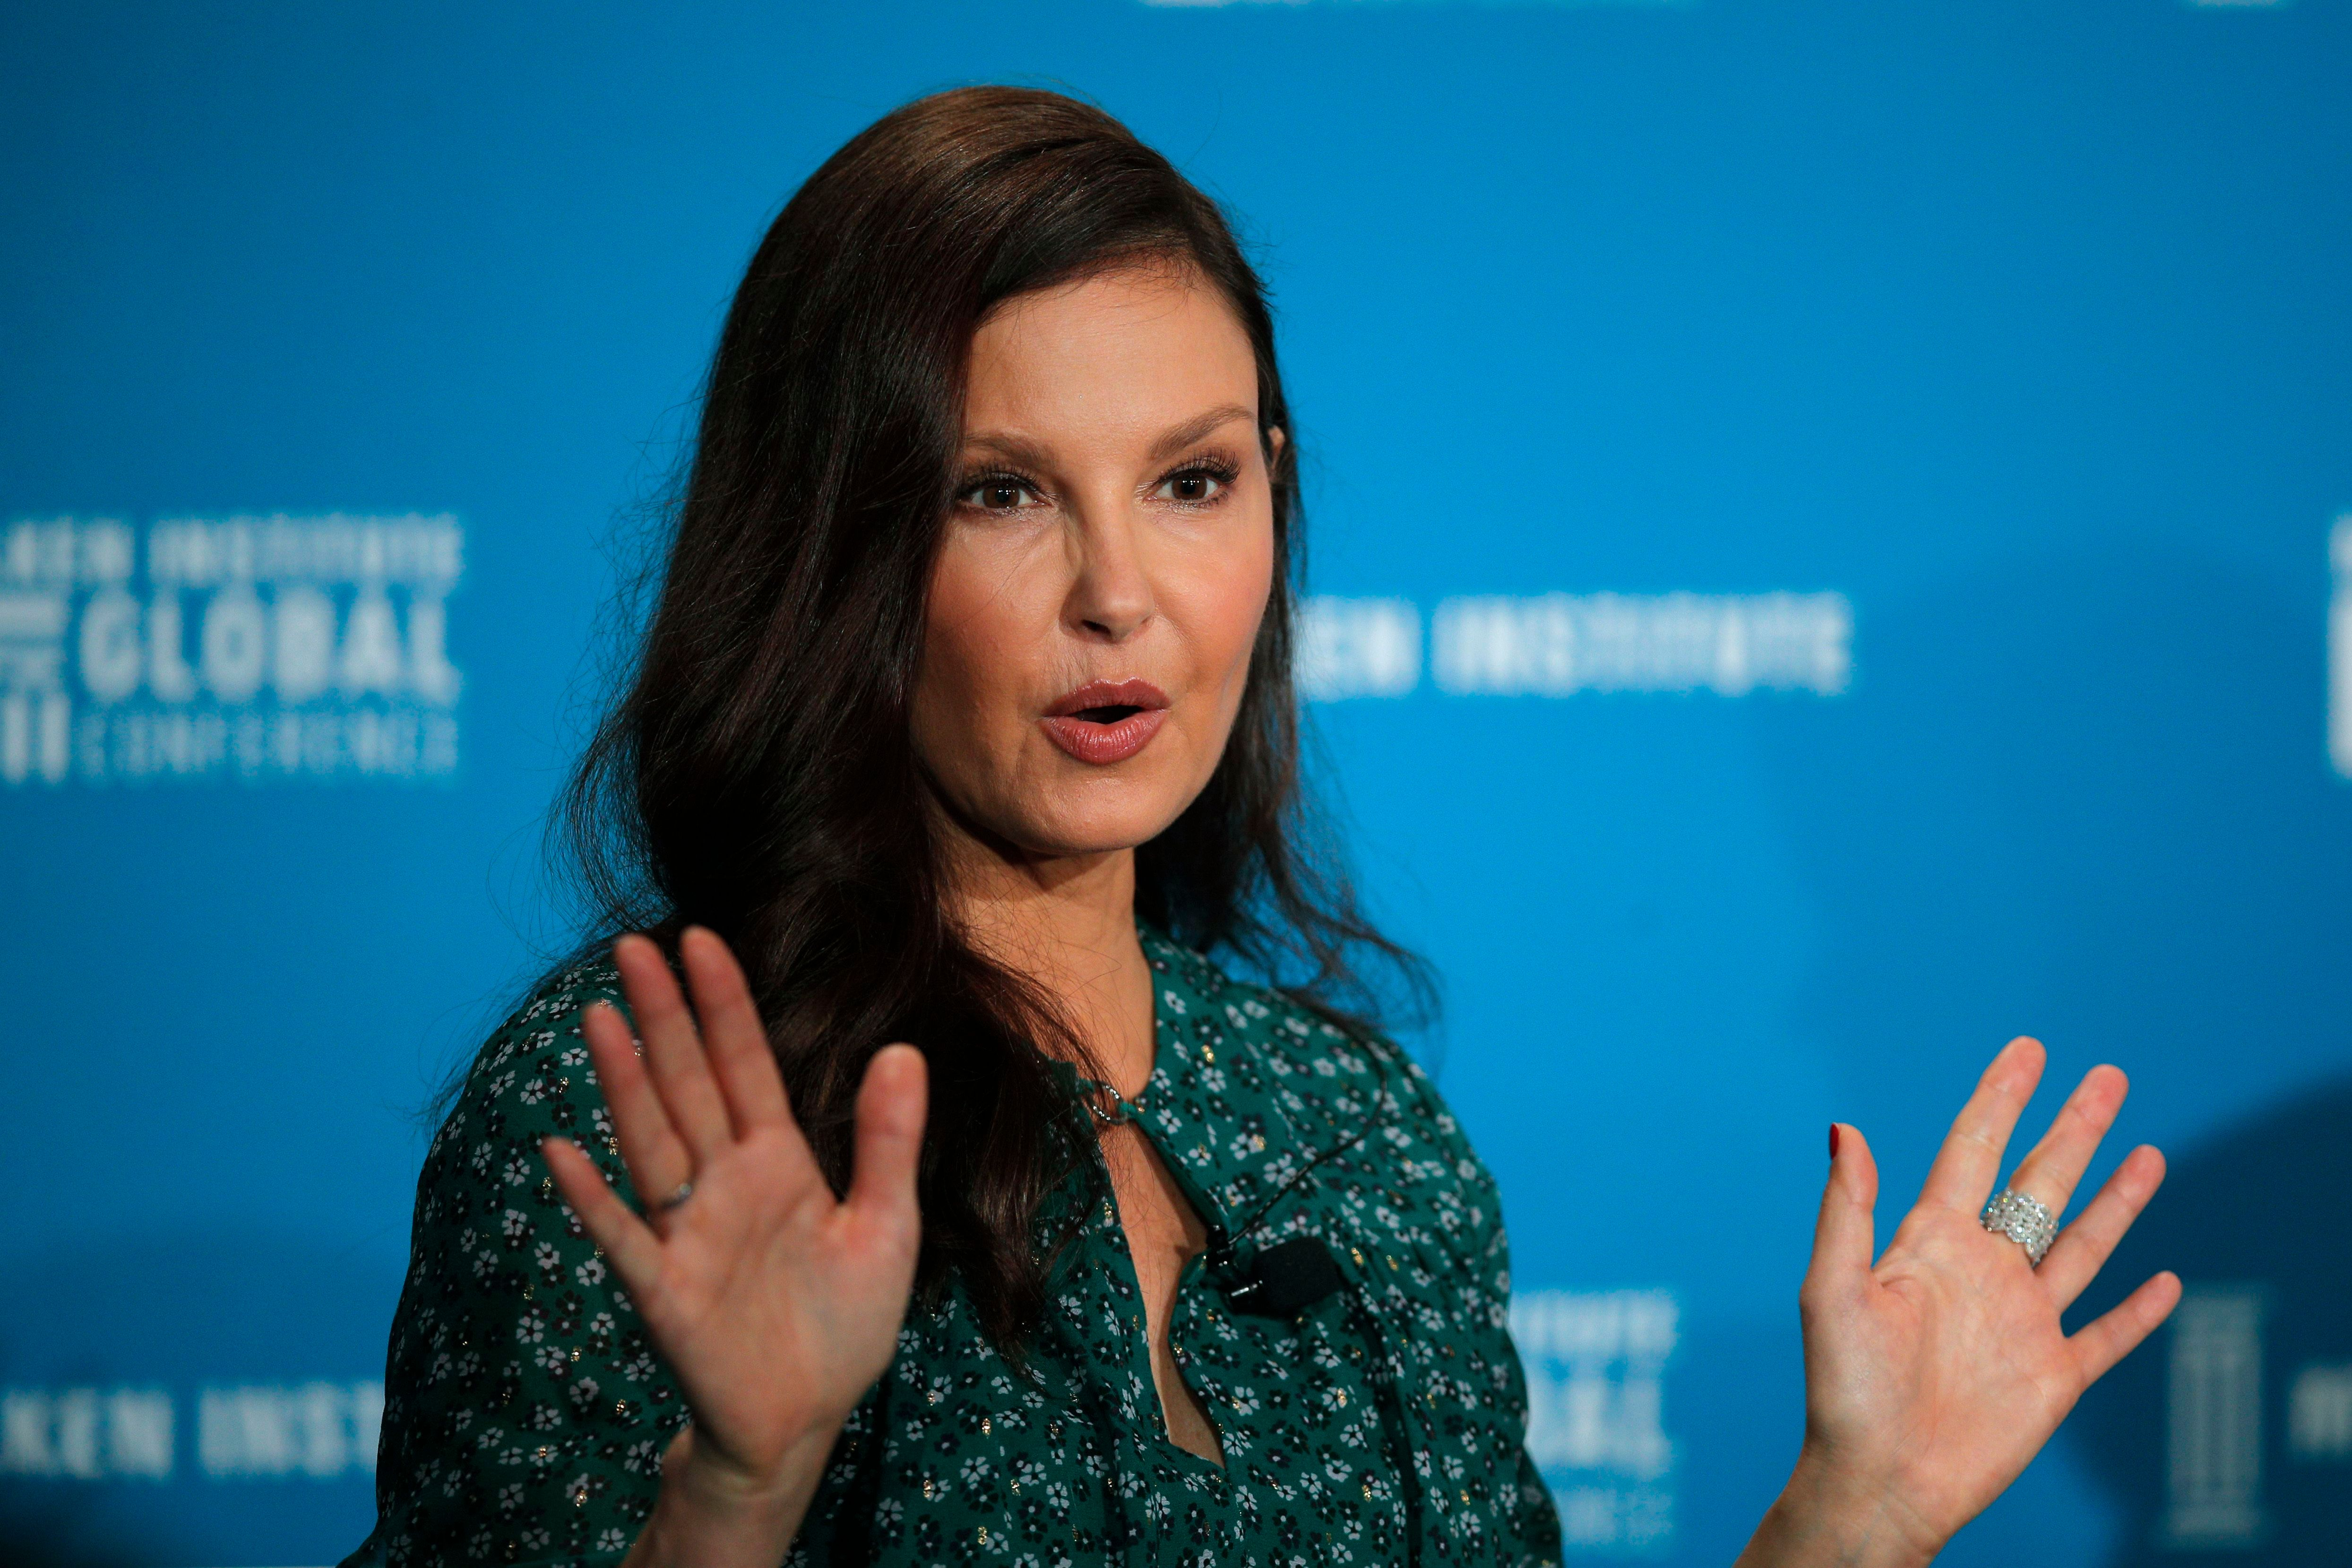 Actress Ashley Judd speaks during a discussion on feminism at the Milken Institute Global Conference, in Beverly Hills, CalifMilken Institute Global Conference, Beverly Hills, USA - 30 Apr 2018